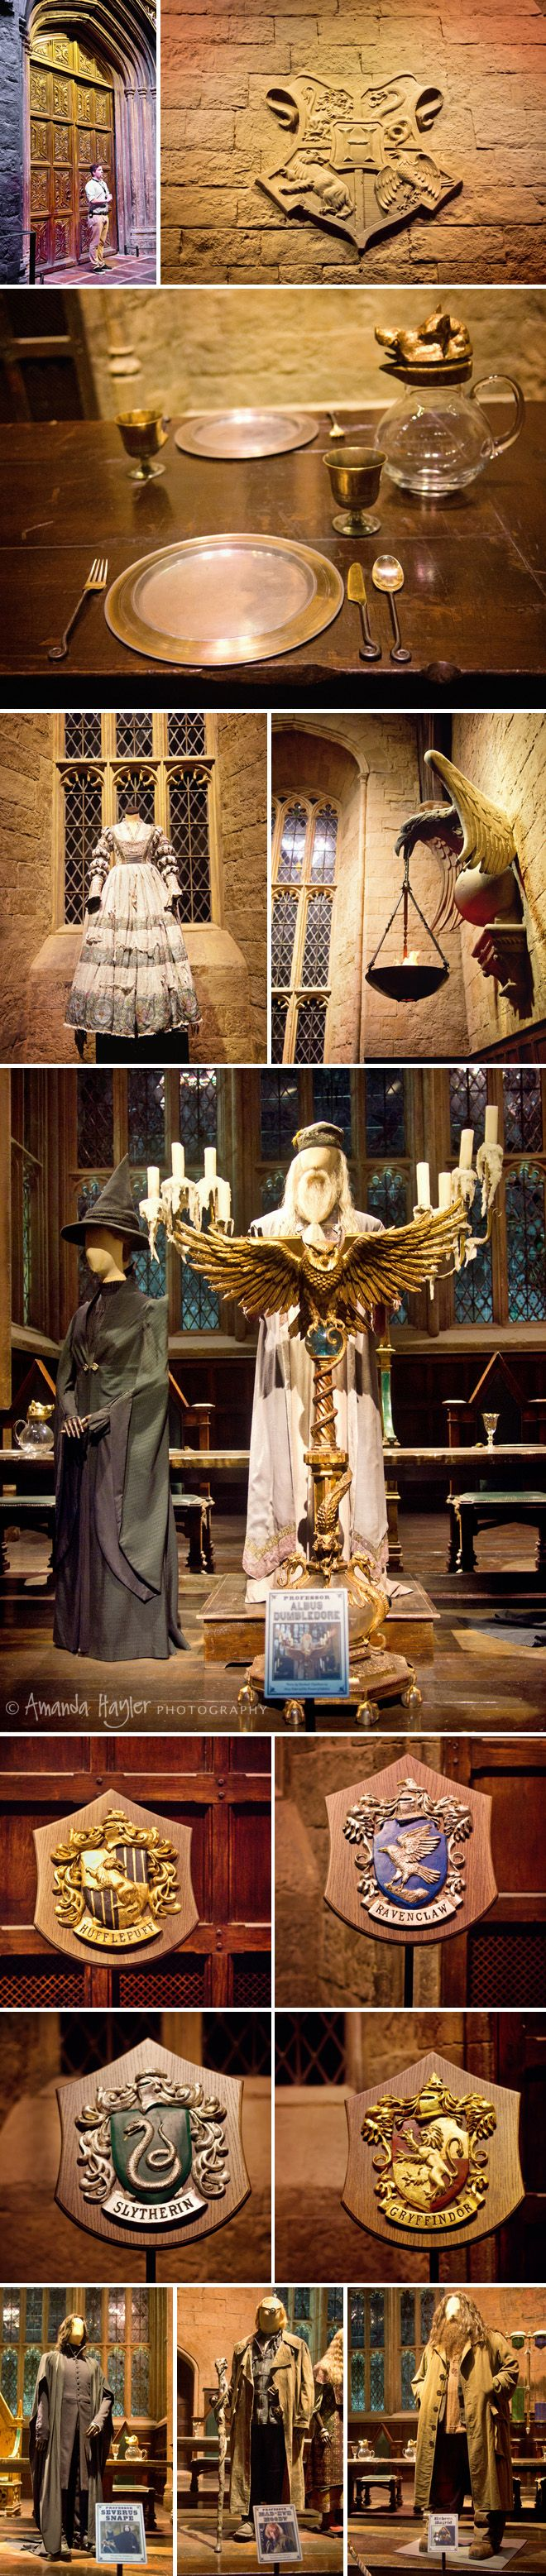 The Making of Harry Potter | Amanda Hayler